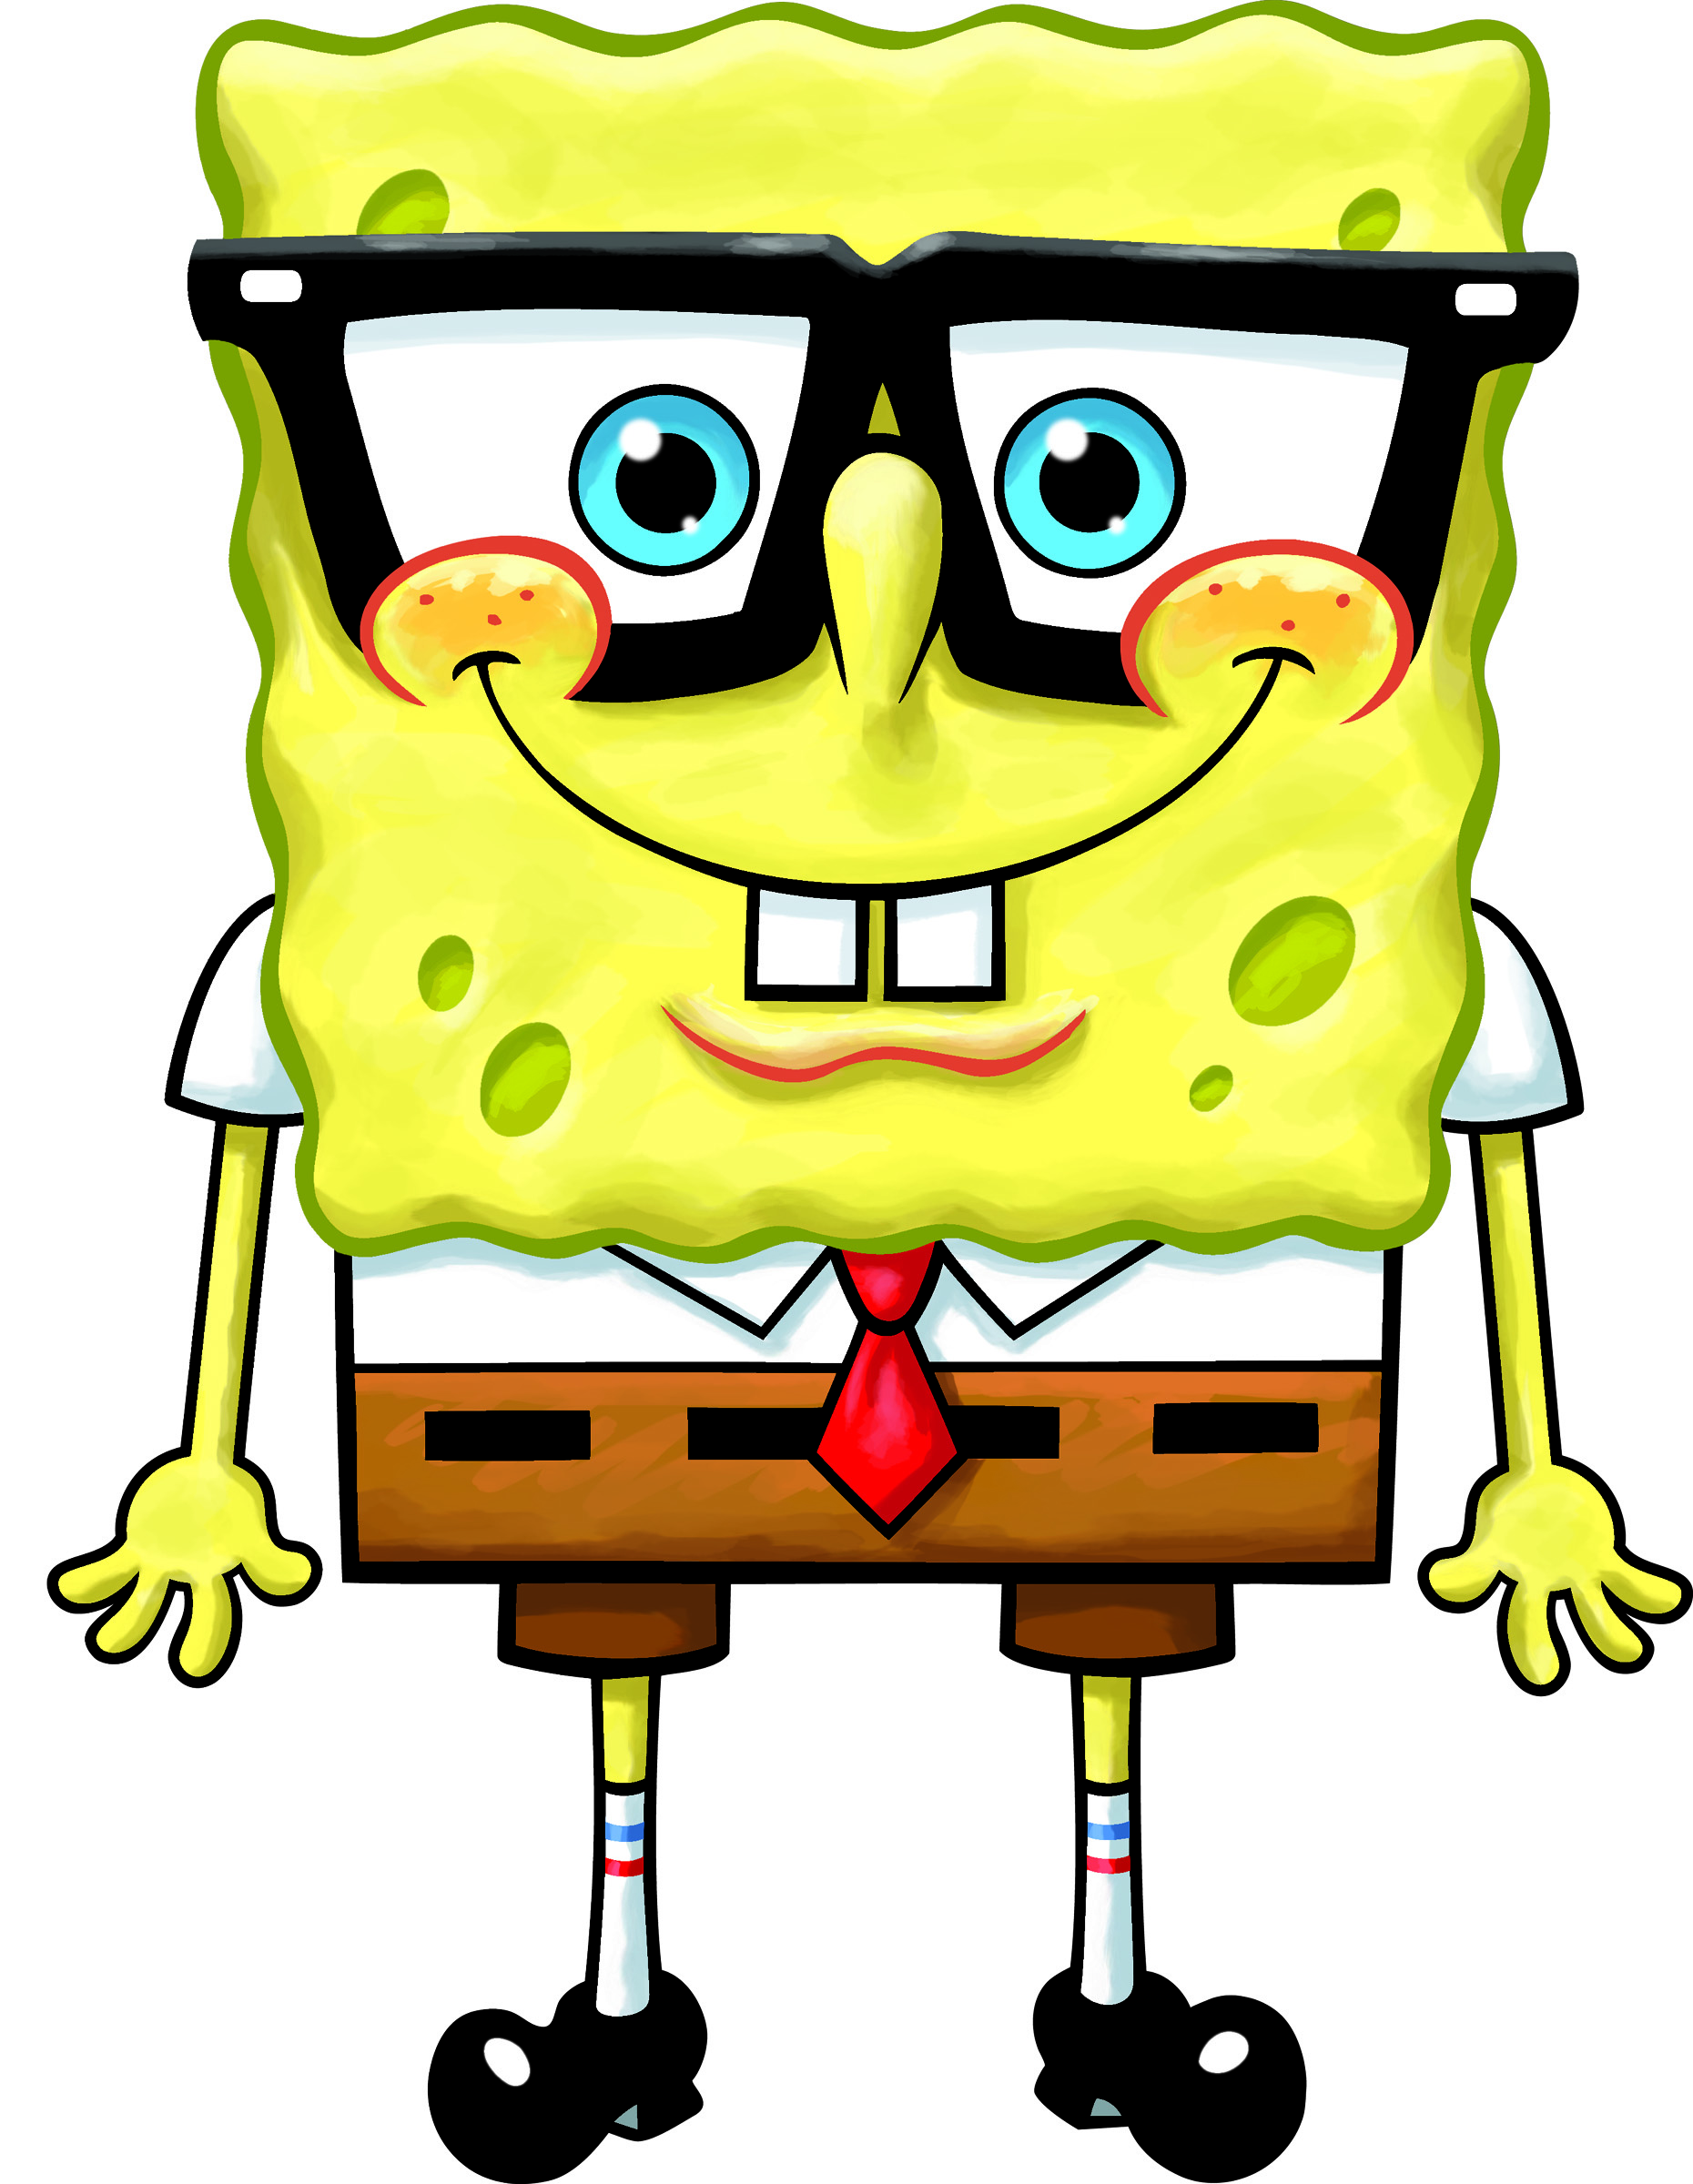 image spongebob jpeg spongebob fanon wiki fandom powered by